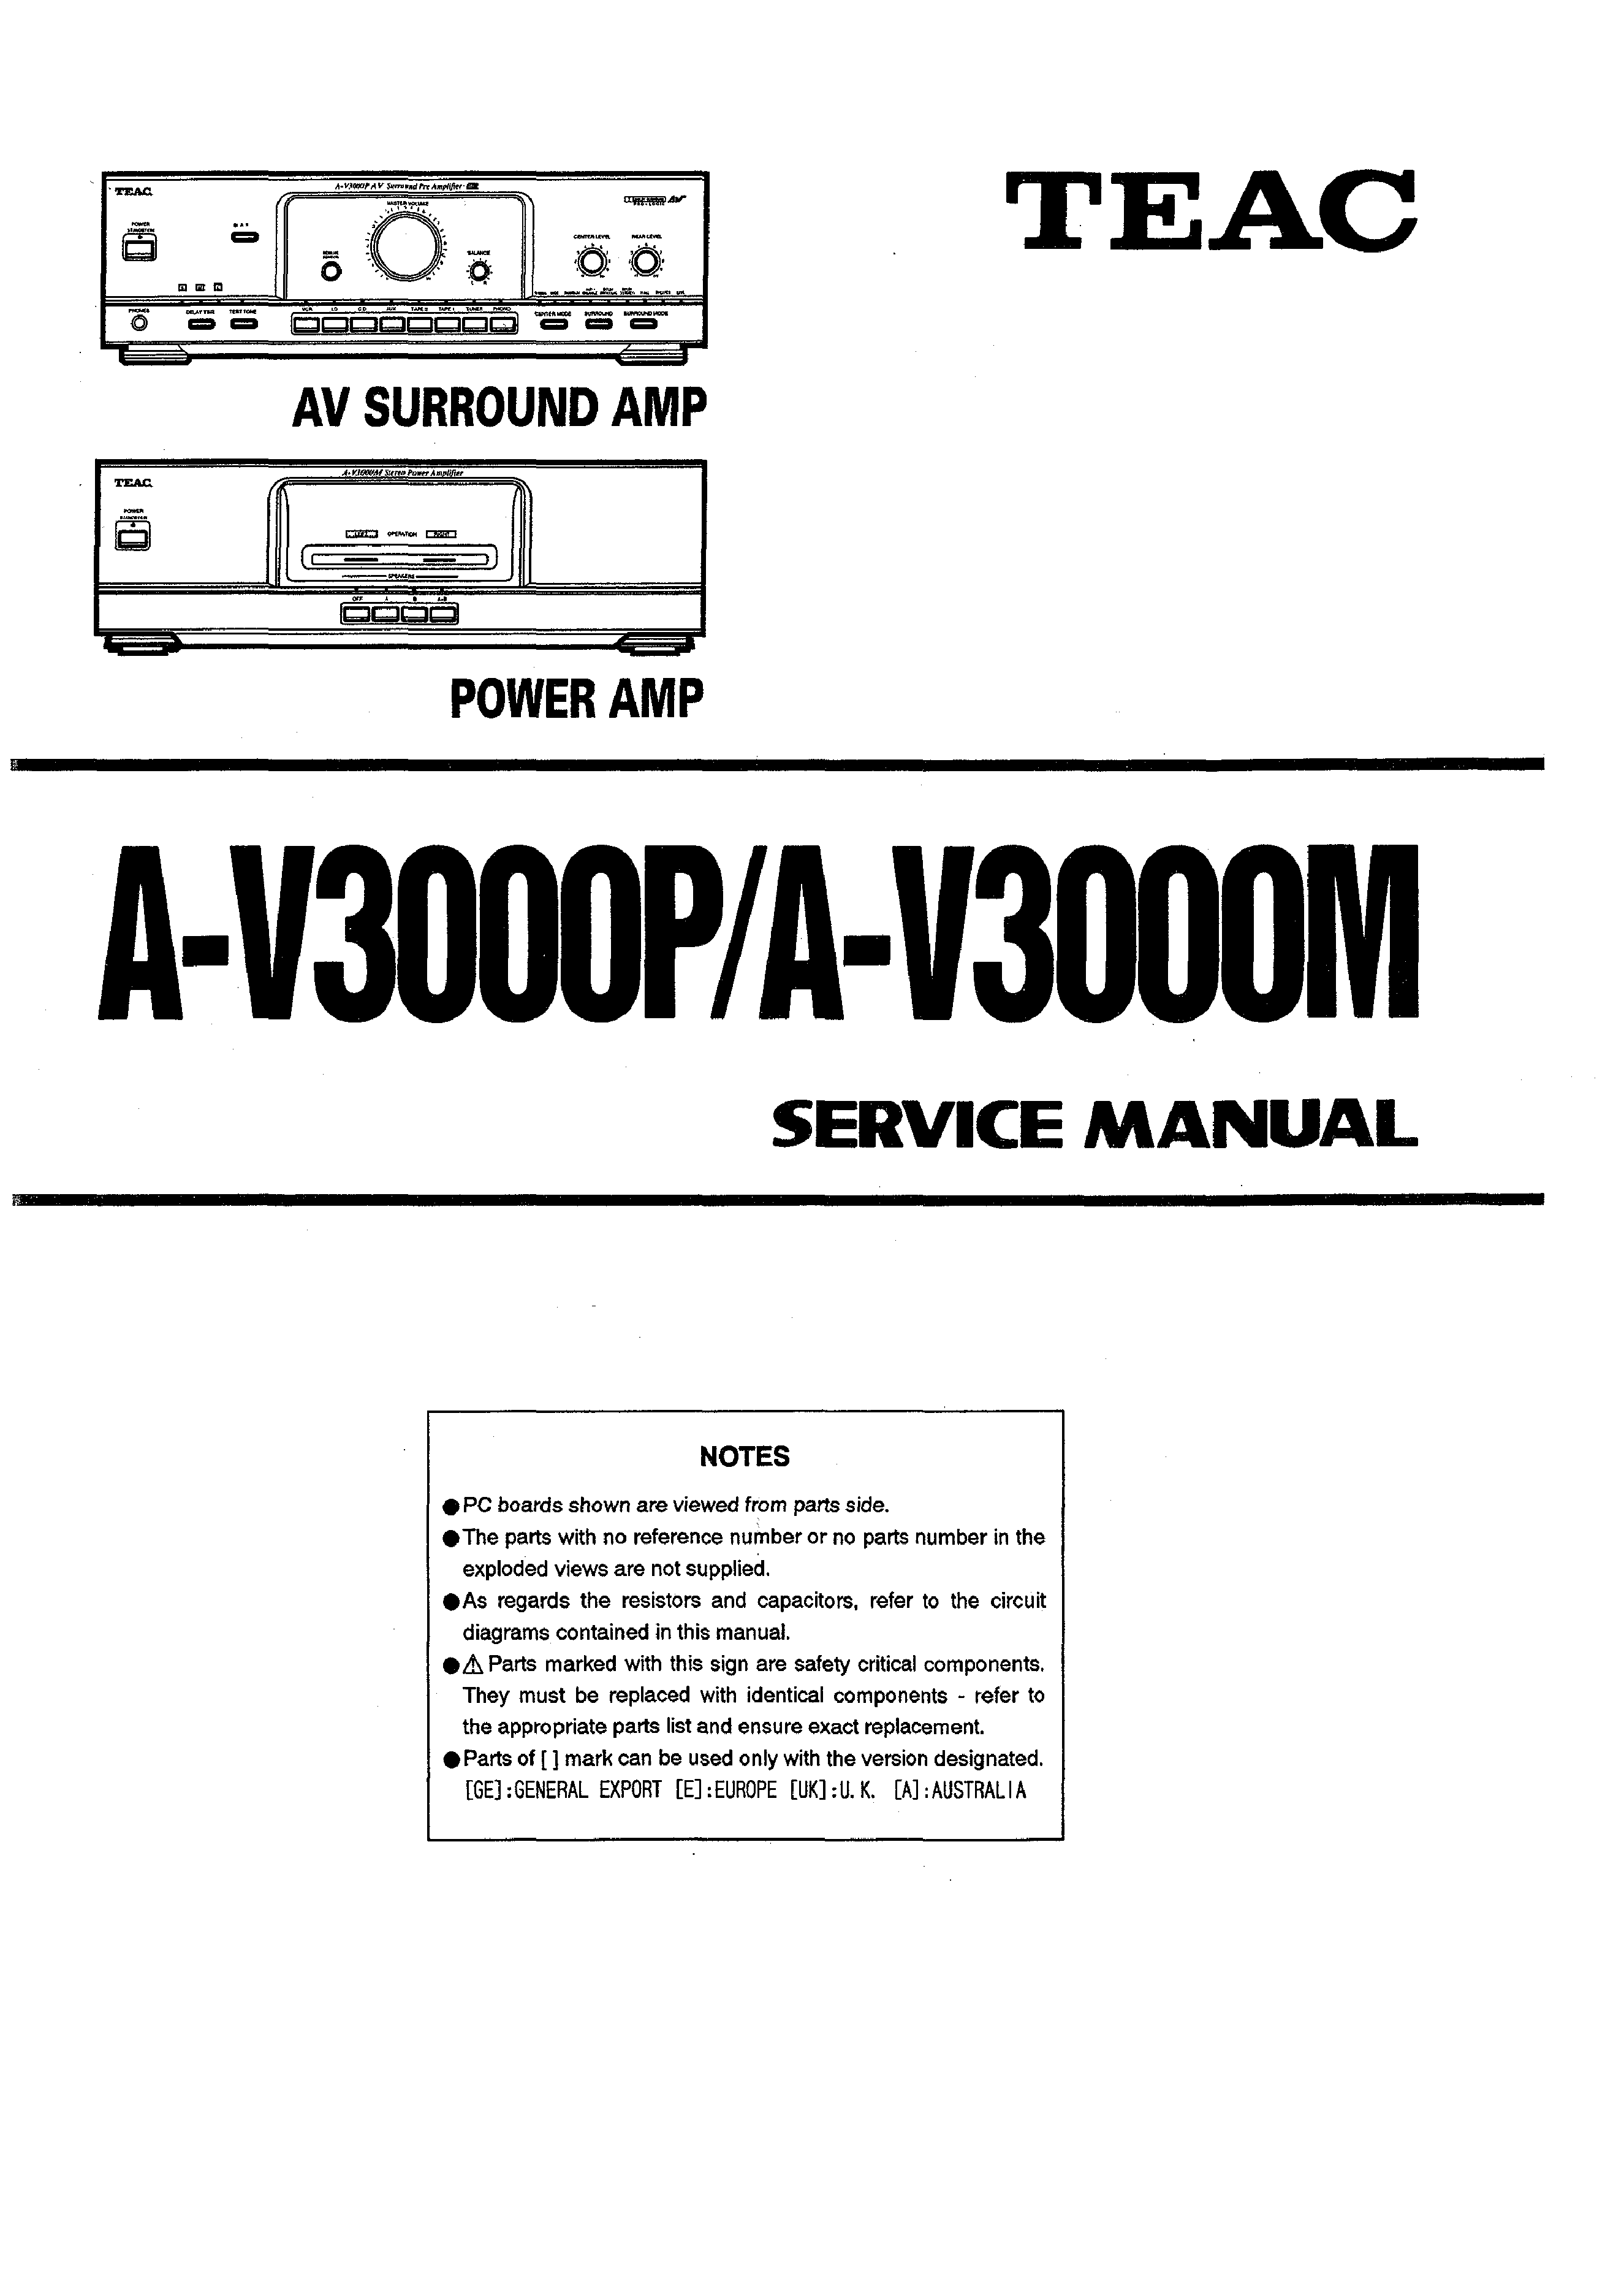 Service Manual for TEAC A-V3000P - Download